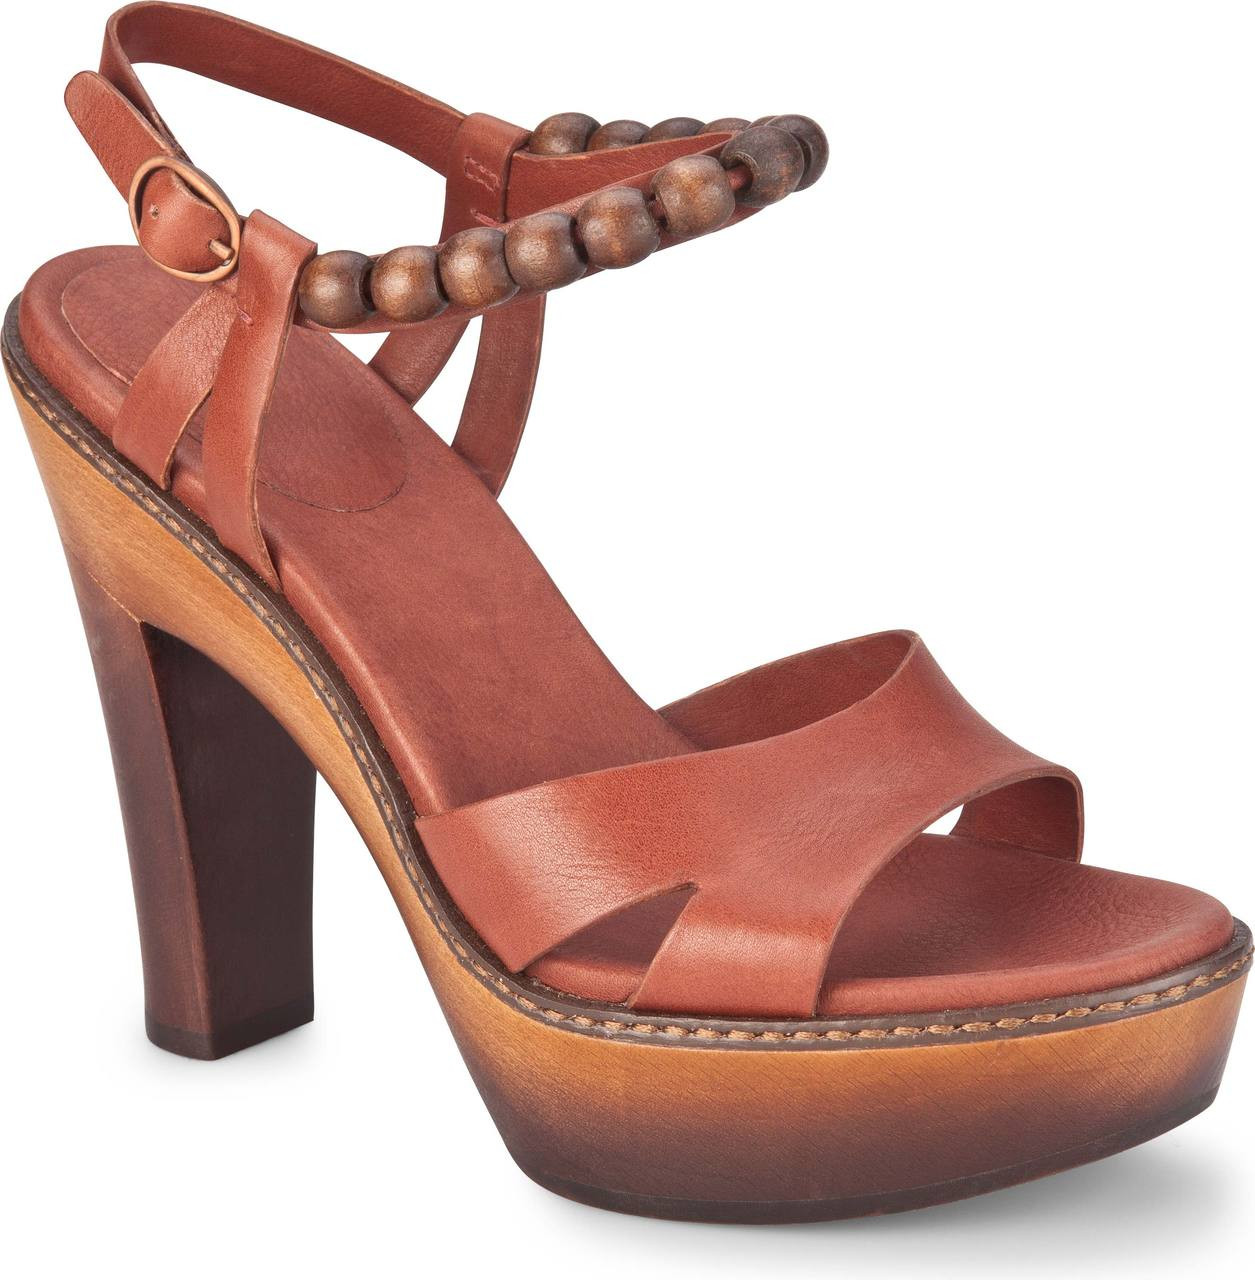 90a72af7a31 Home · Women s Clearance Shoes · Sandals  UGG Australia Women s Naima  (Available in Multiple Colors). Cinnamon Bark. Cinnamon Bark  Natural